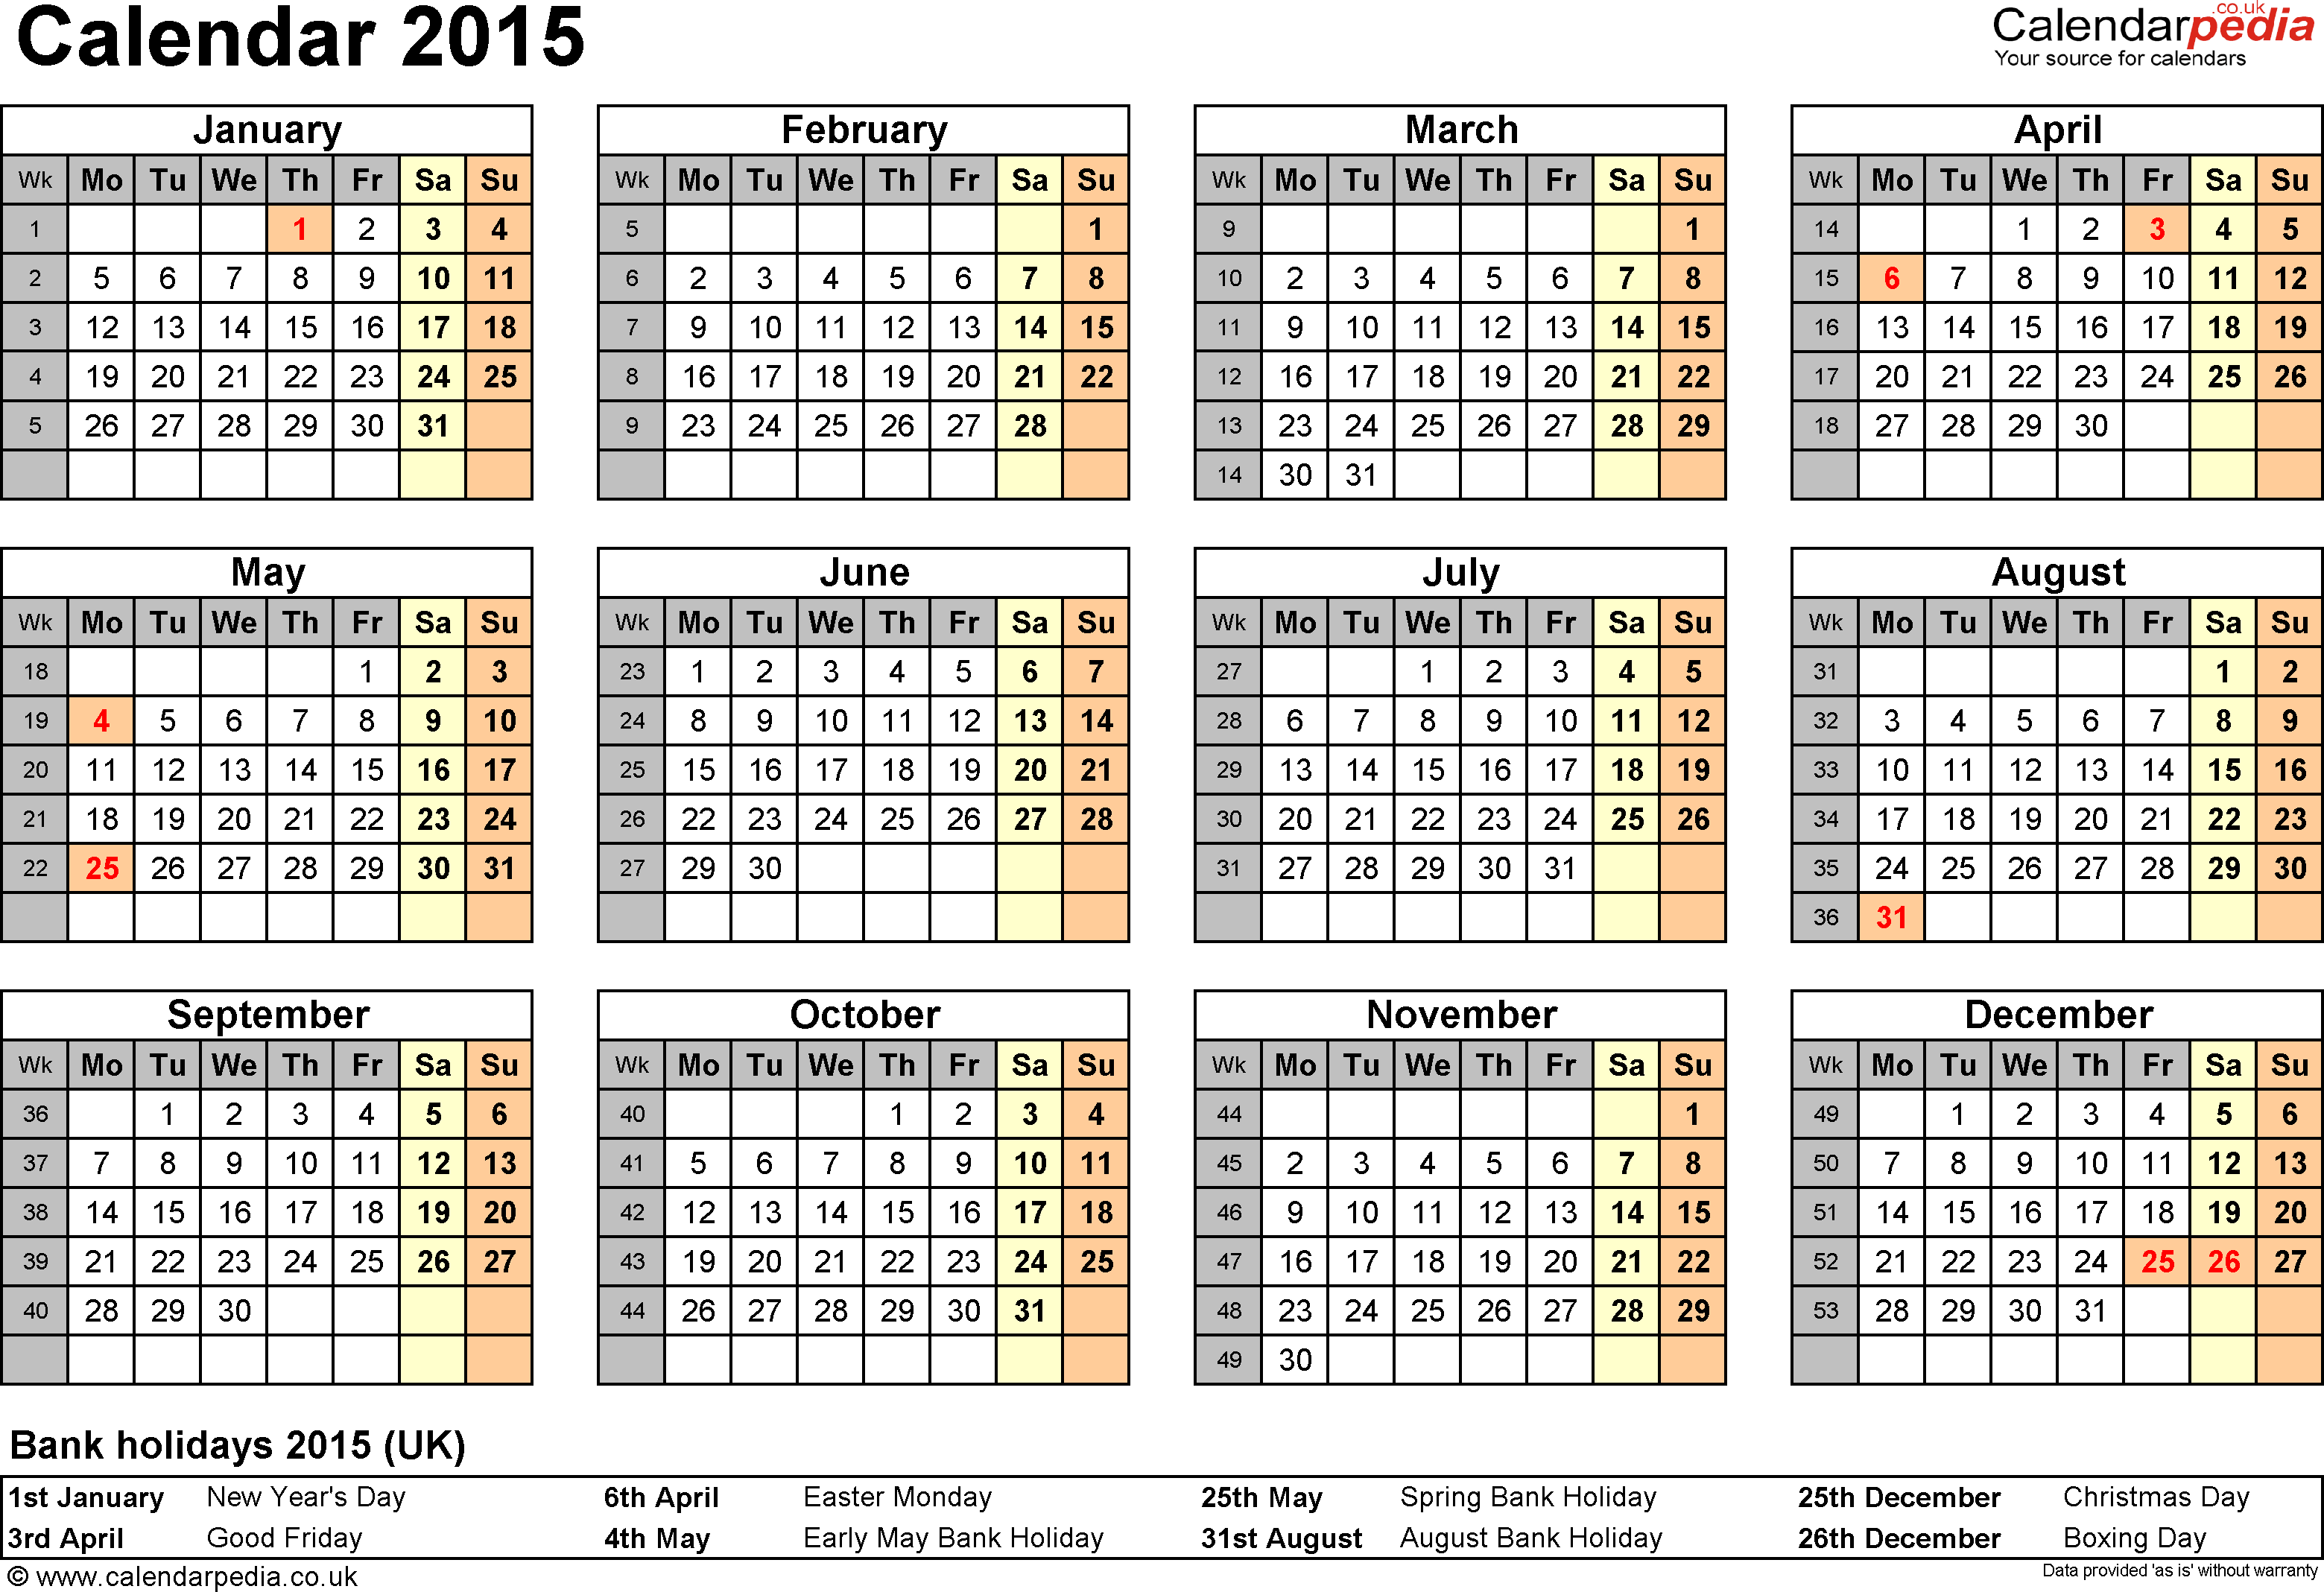 Download Template 8: Yearly calendar 2015 as Excel template, year overview, 1 page